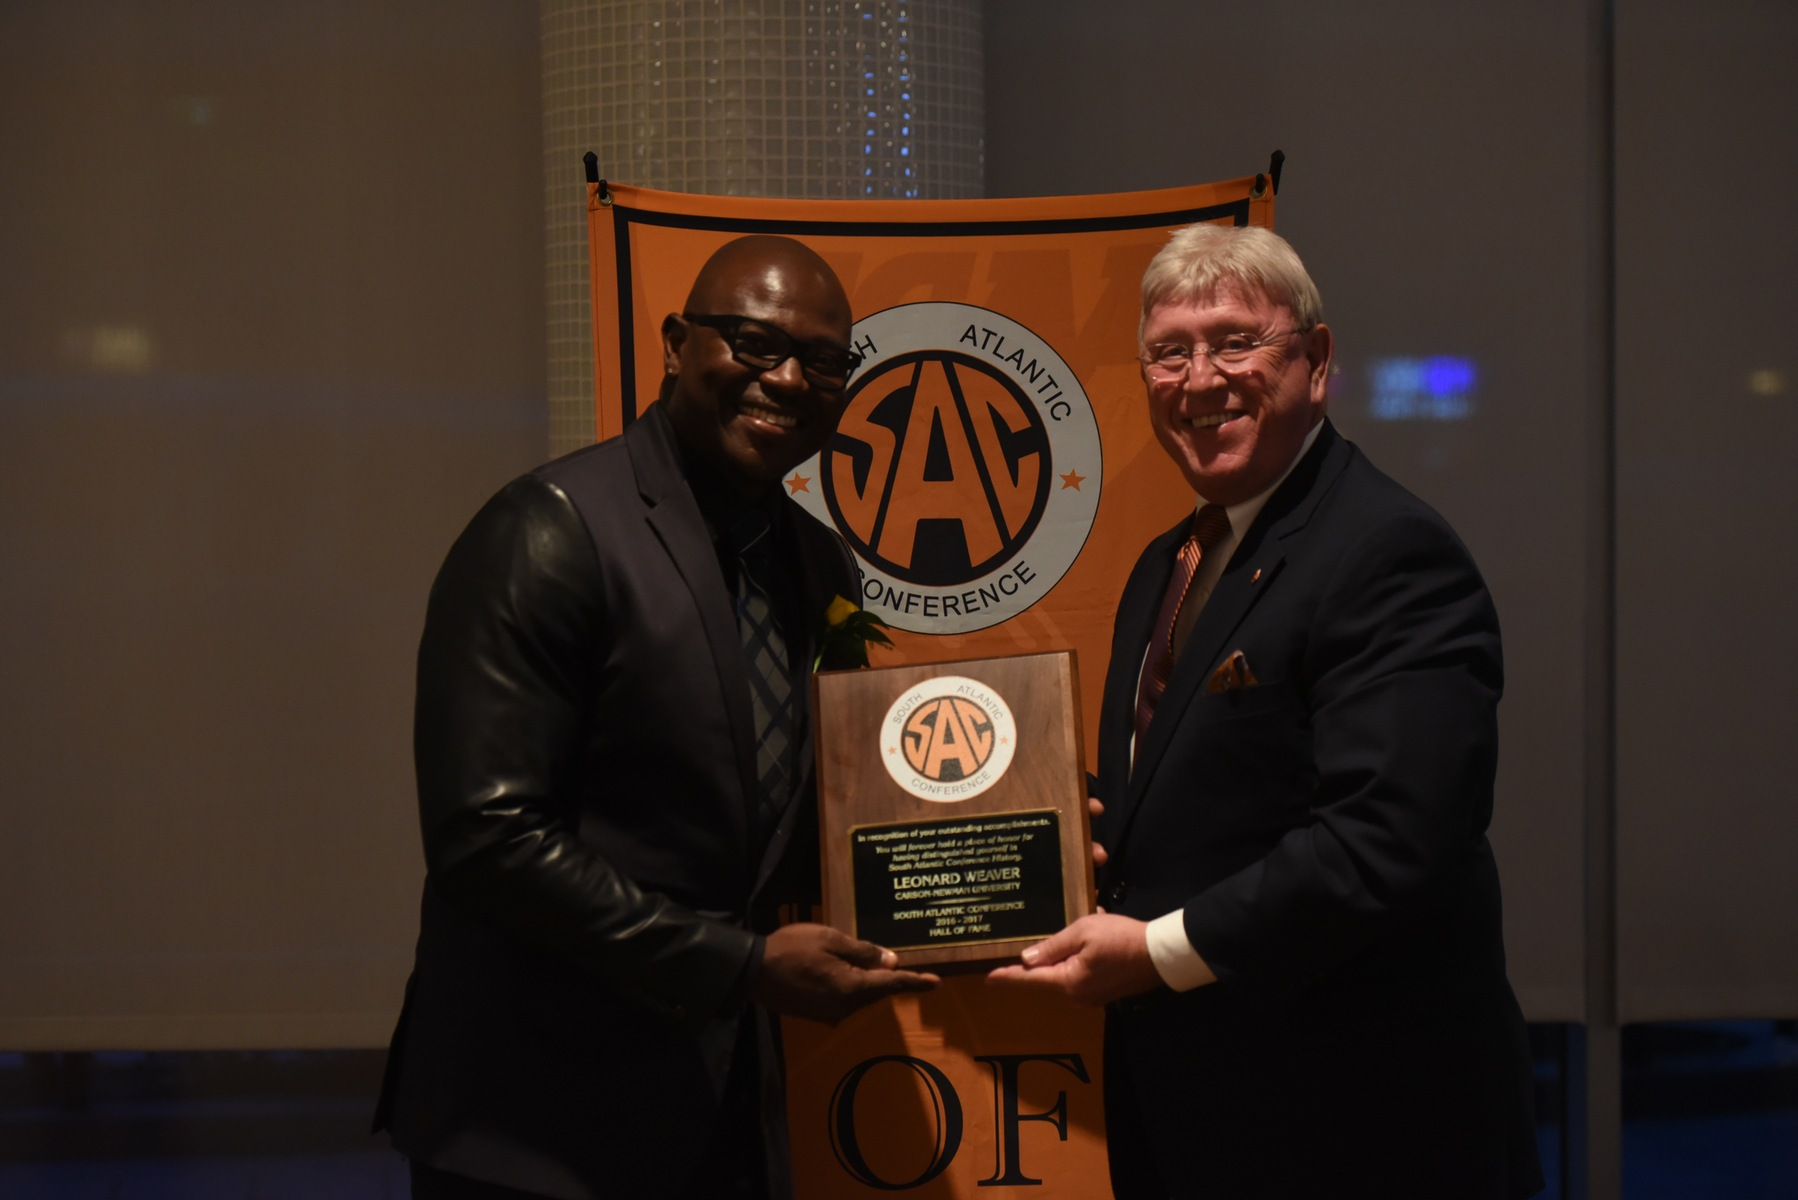 Leonard Weaver accepts his SAC Hall of Fame plaque from C-N Director of Athletics Allen Morgan